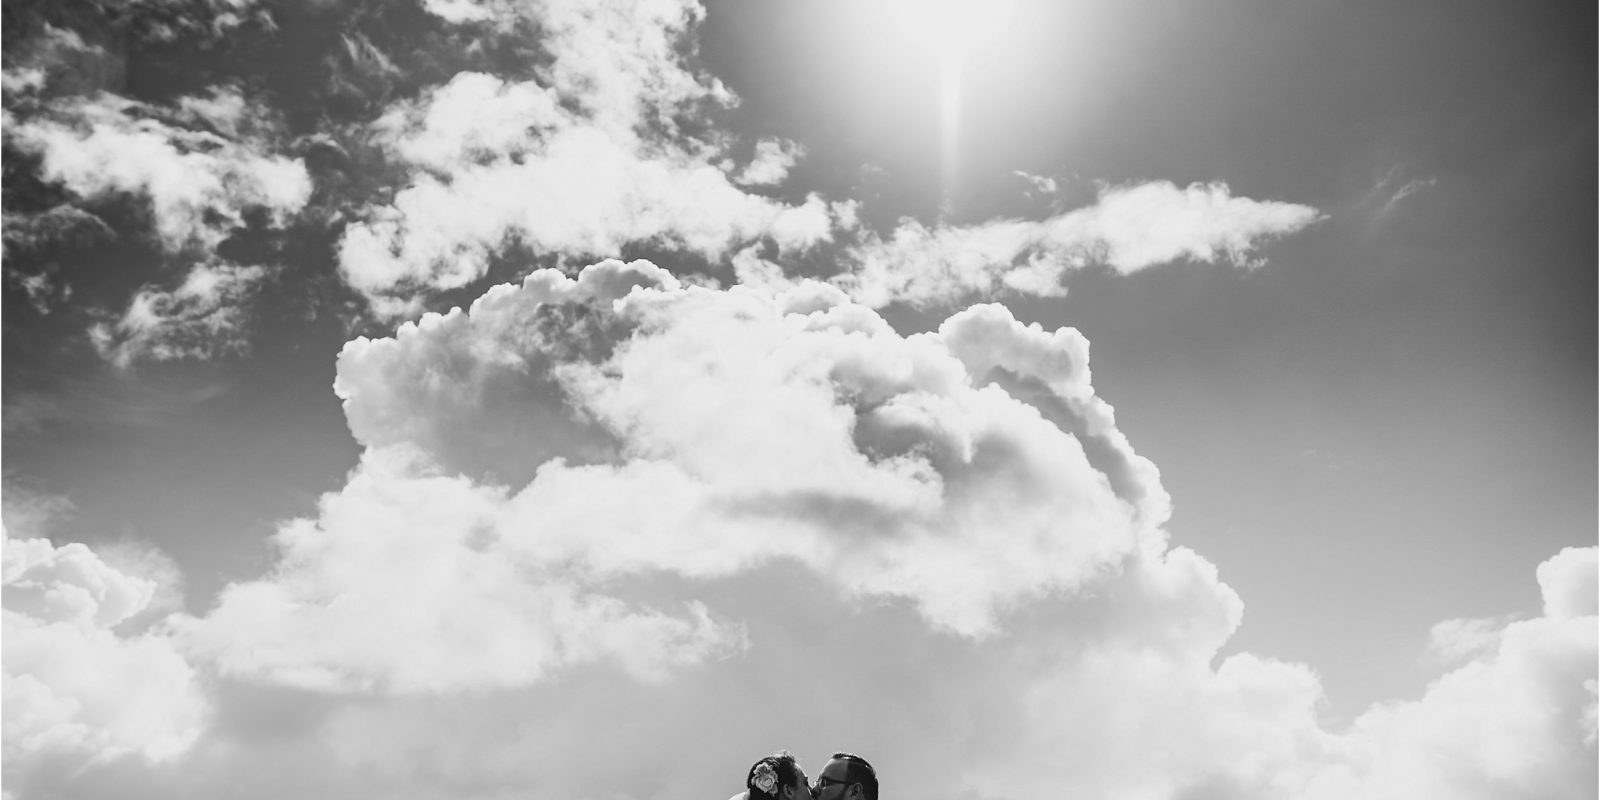 West Wales Wedding Photographer - Sam & Peter's previews